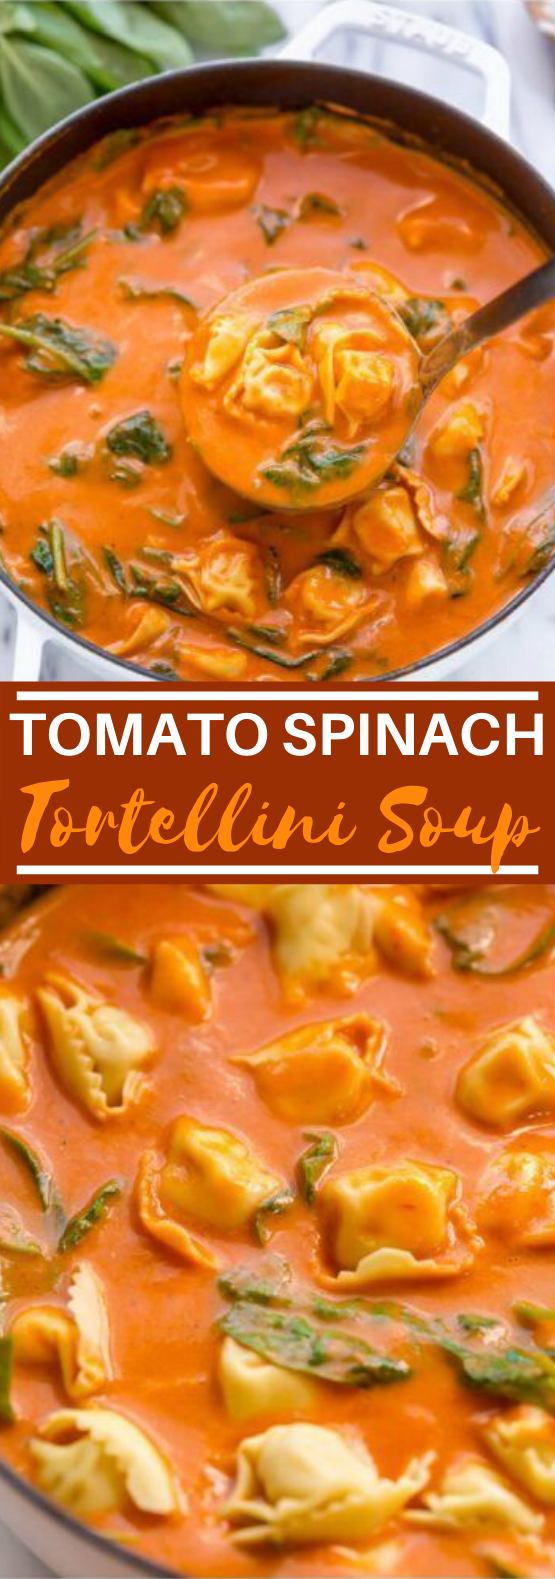 Tomato Tortellini Soup #dinner #soup #recipes #vegetarian #comfortfood